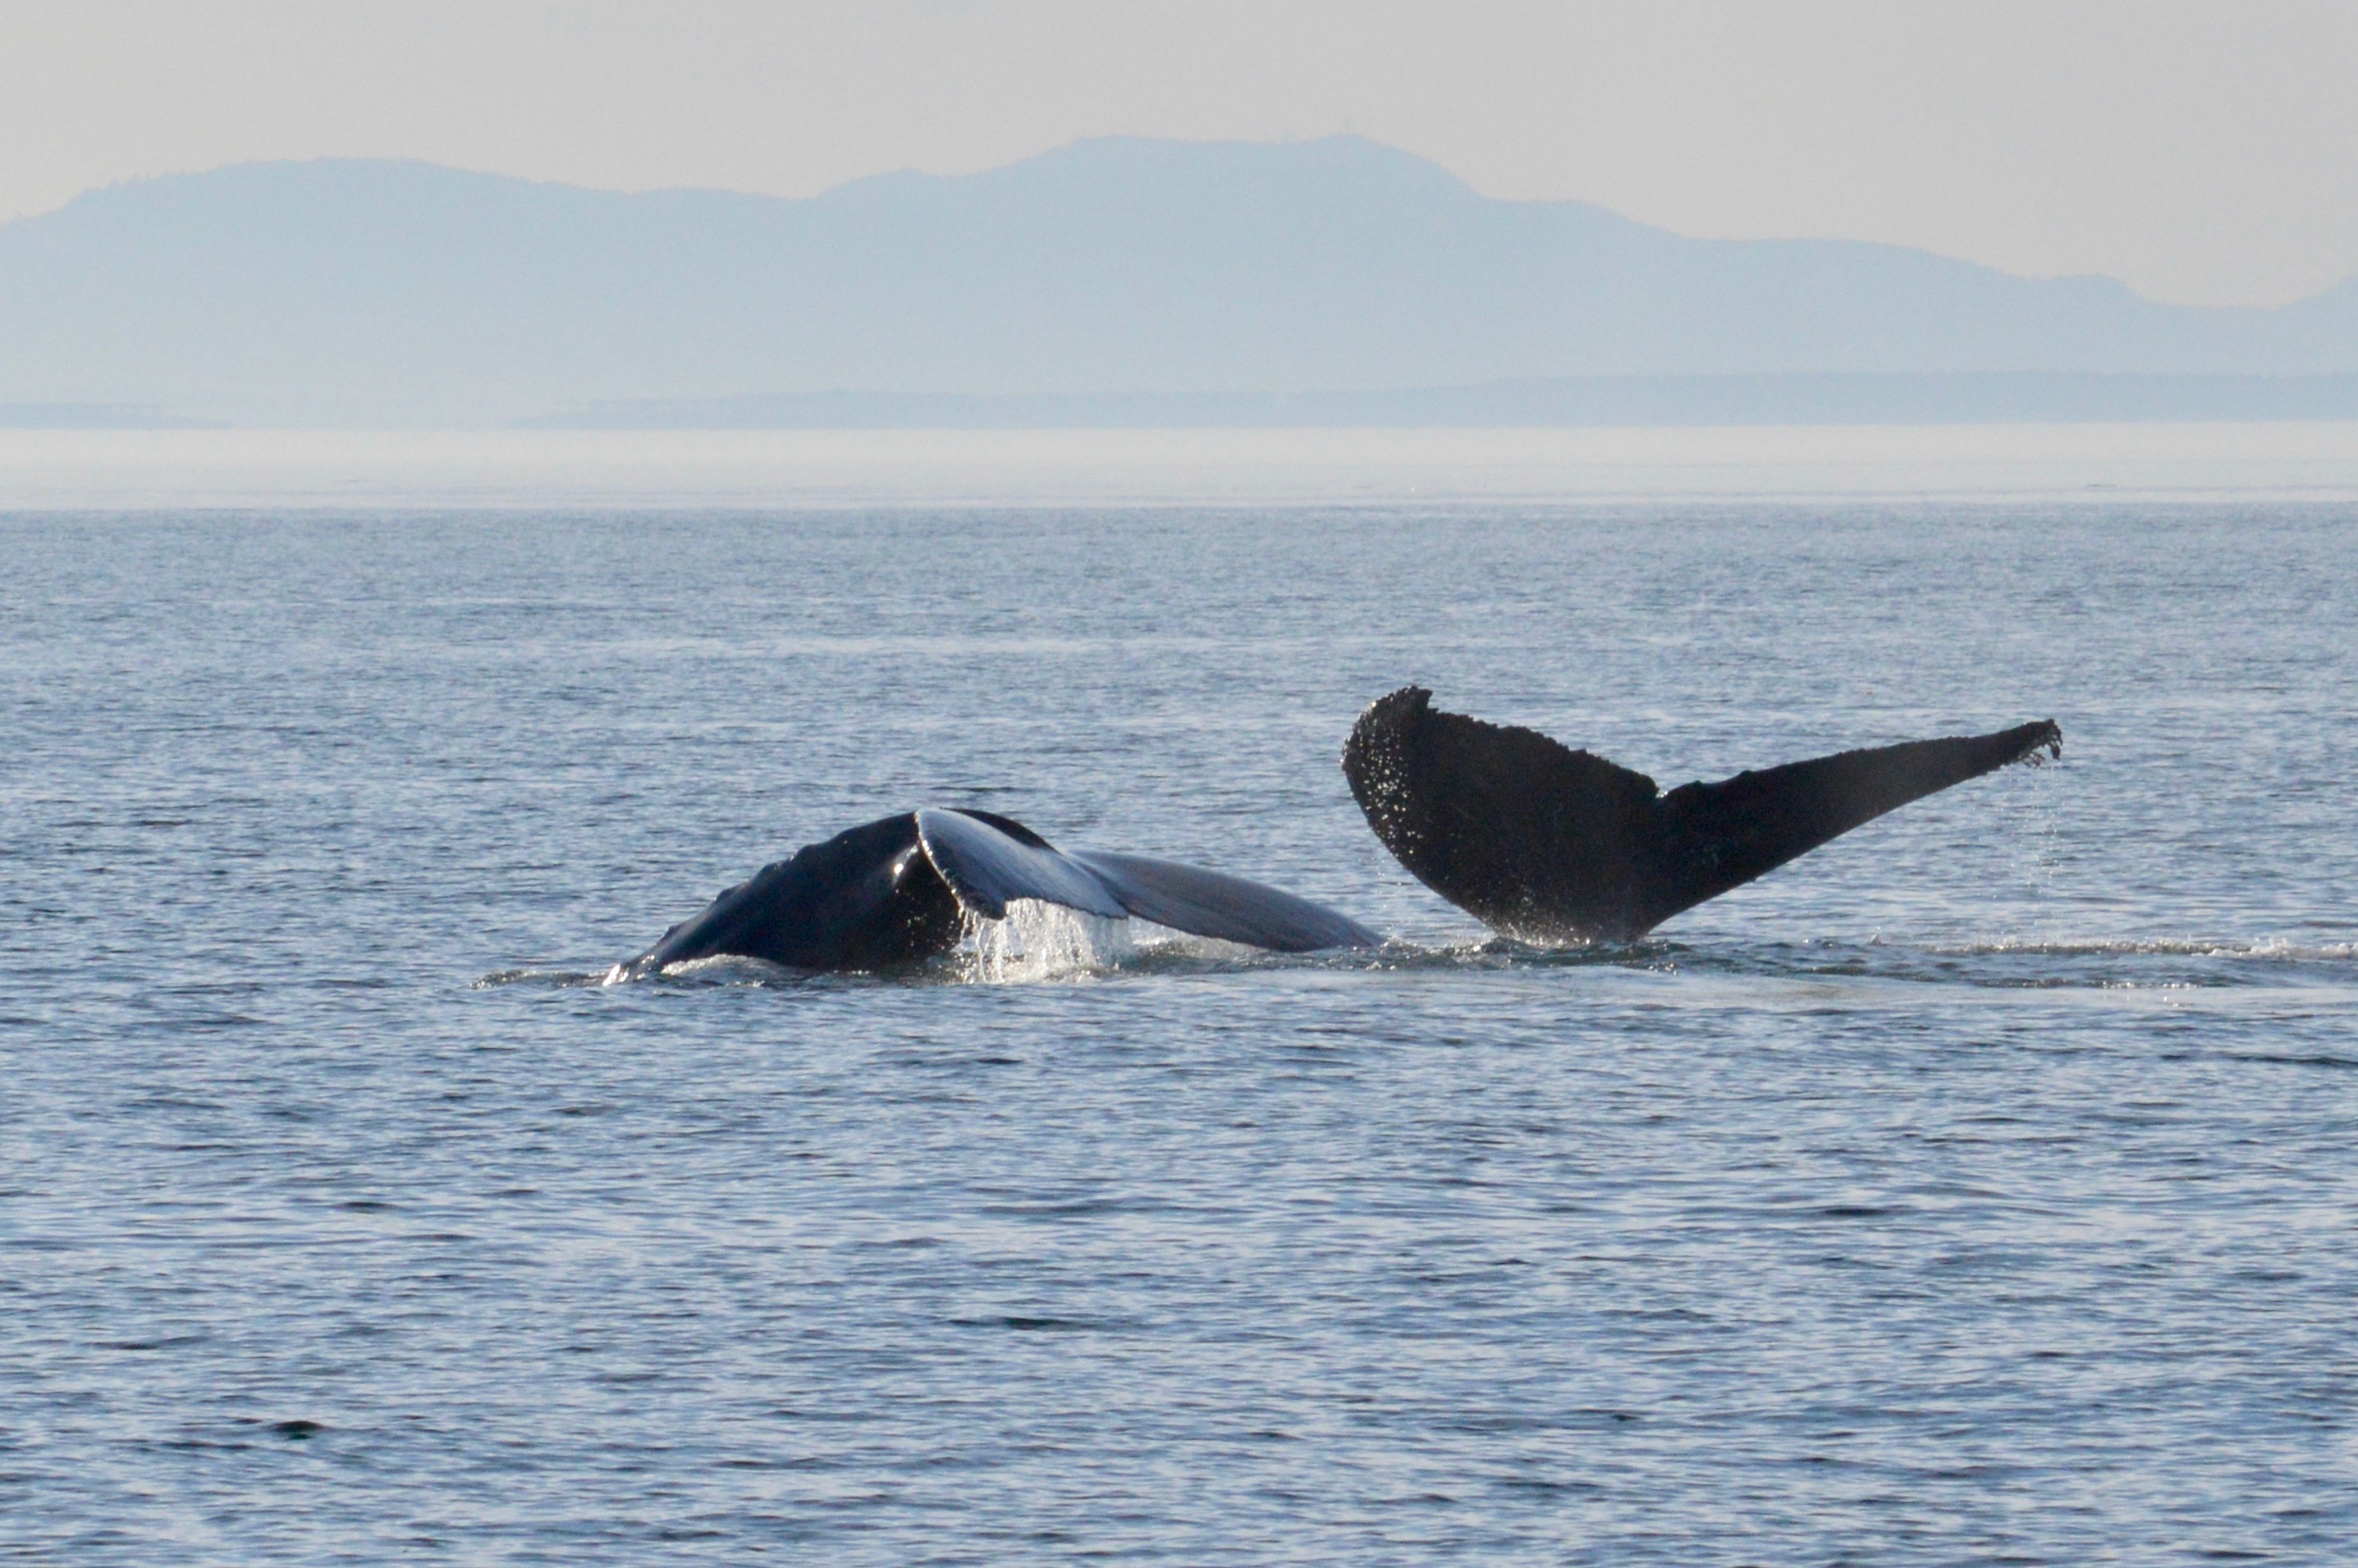 Whales Spotted: Humpback Whales in the Salih Sea